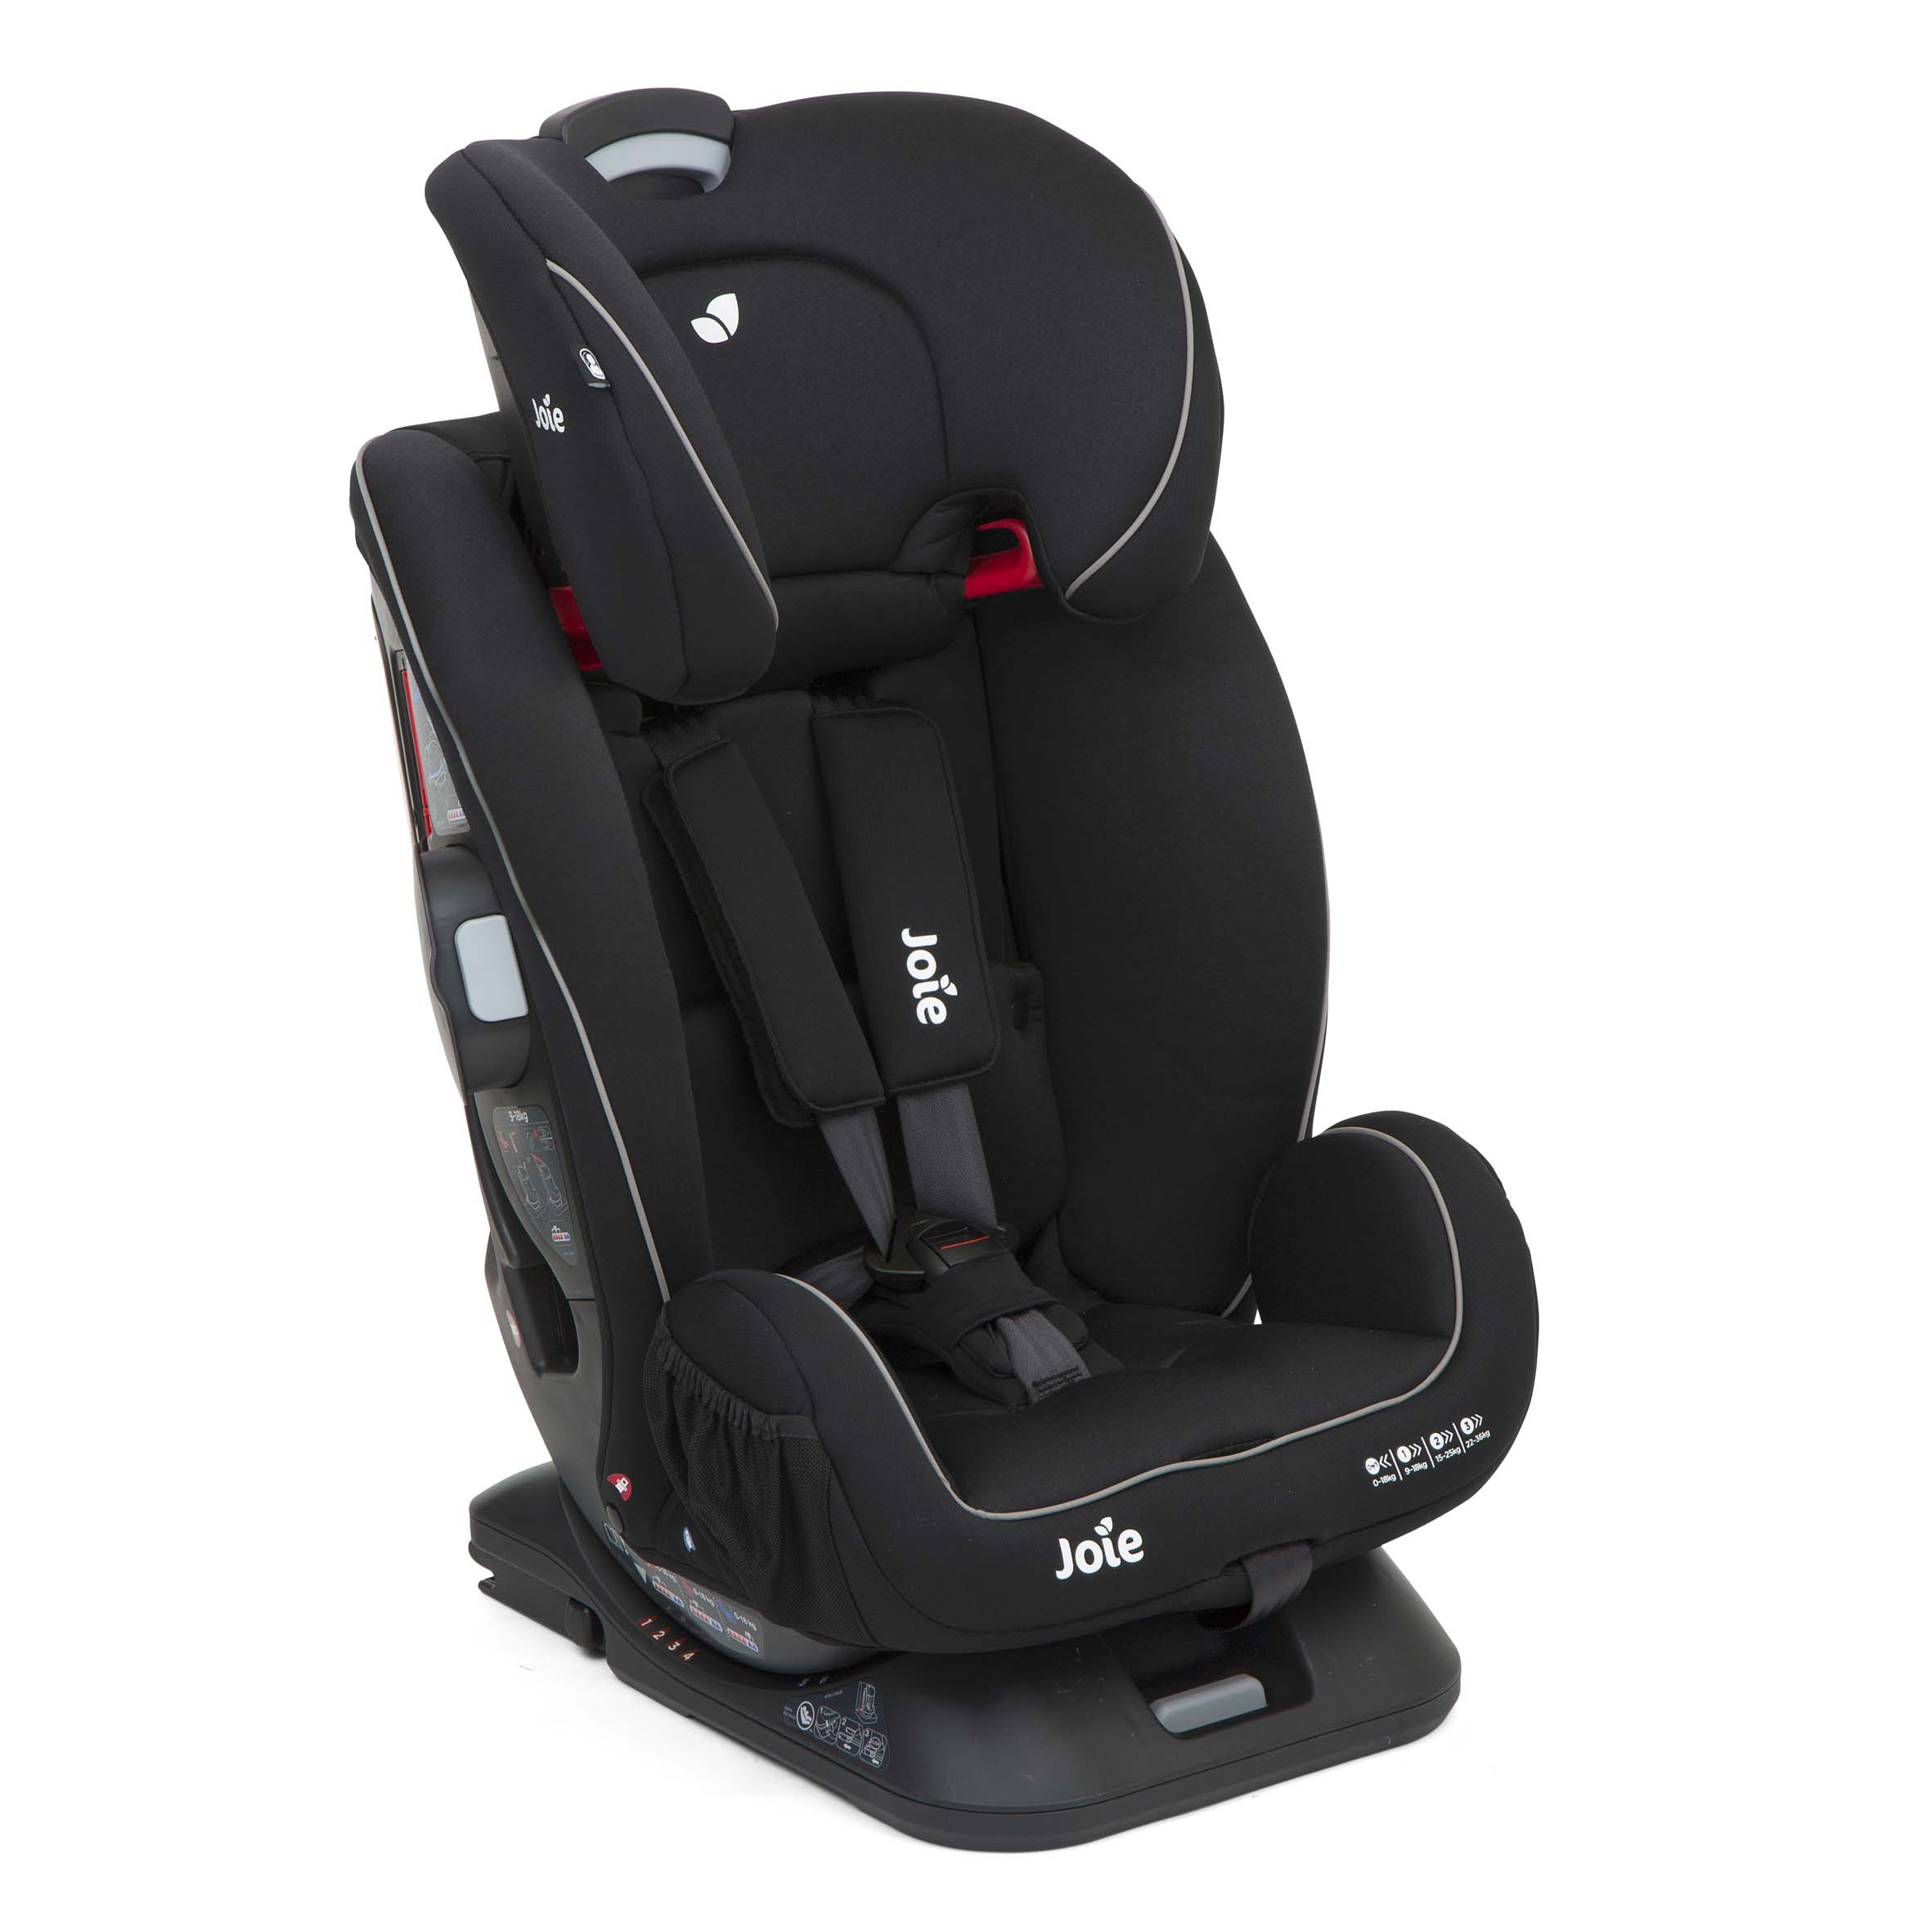 Stage 2 Car Seat With Base Every Stage Fx Joie New Zealand Explore Joie